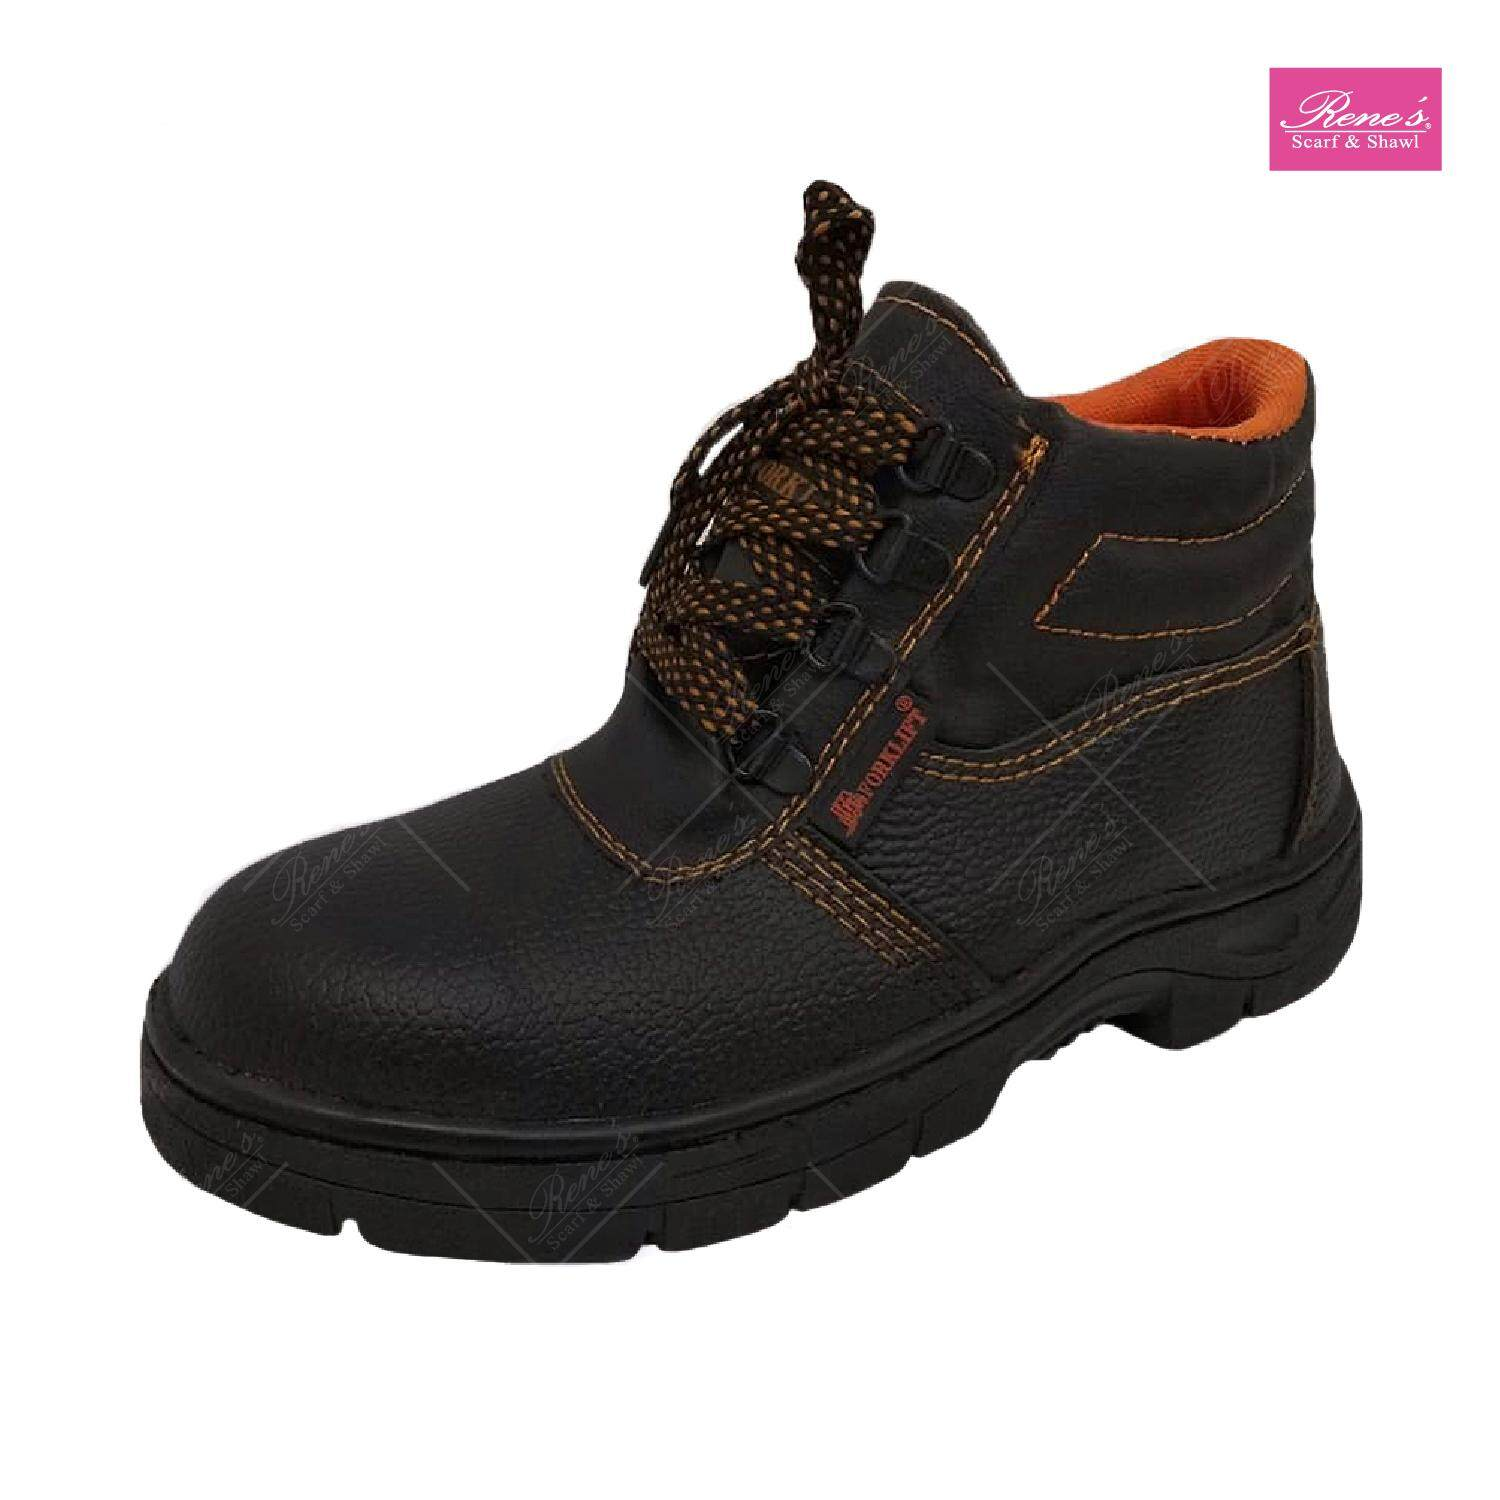 a480c44f627d Safety Boot Shoe Middle Cut Safety Boot